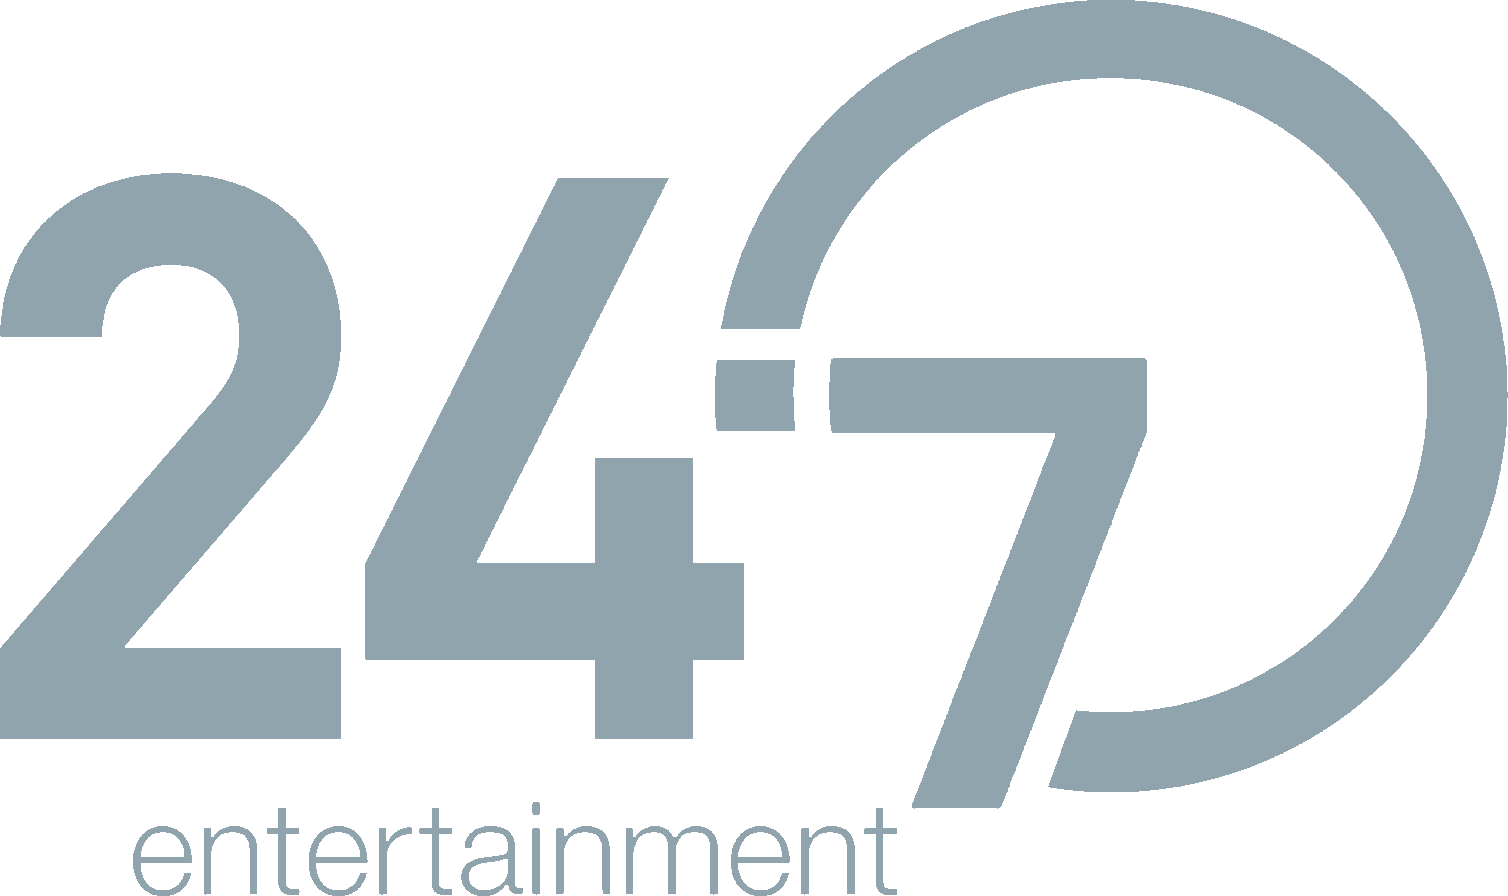 24ent.png